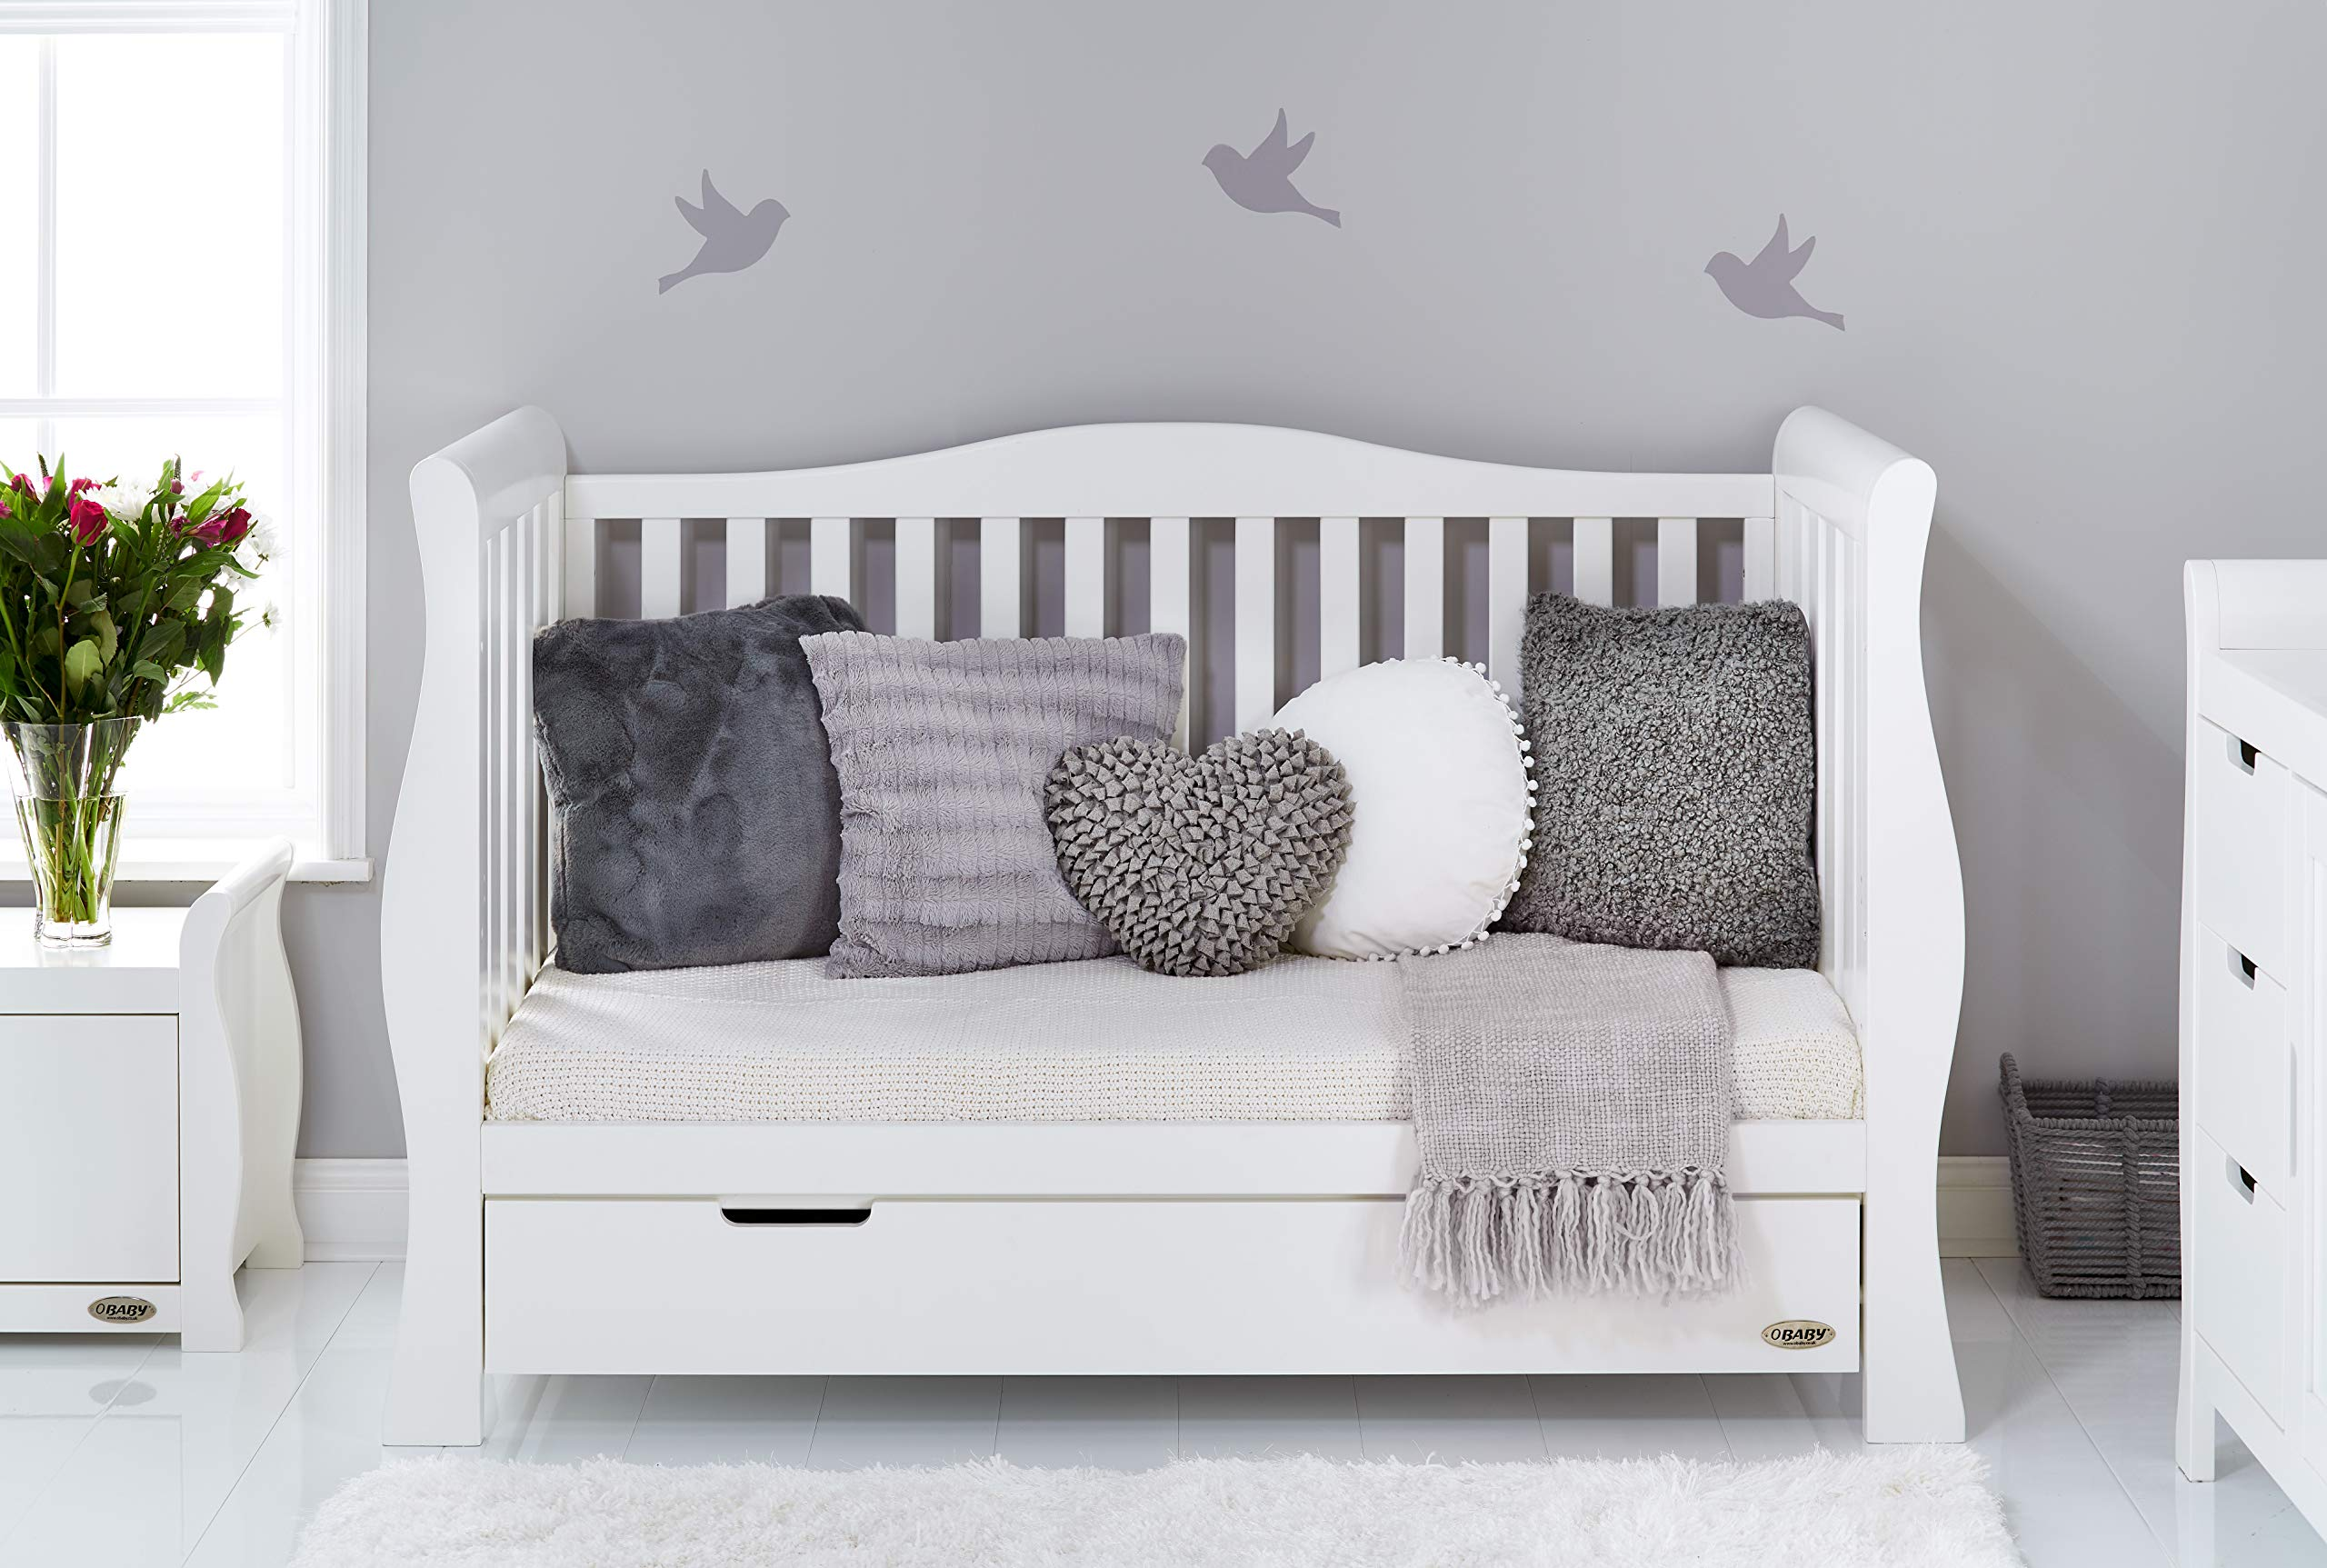 Obaby Stamford Sleigh Luxe Cot Bed - White Obaby Adjustable 3 position mattress height Bed ends split to transforms into toddler bed Includes matching under drawer for storage 4